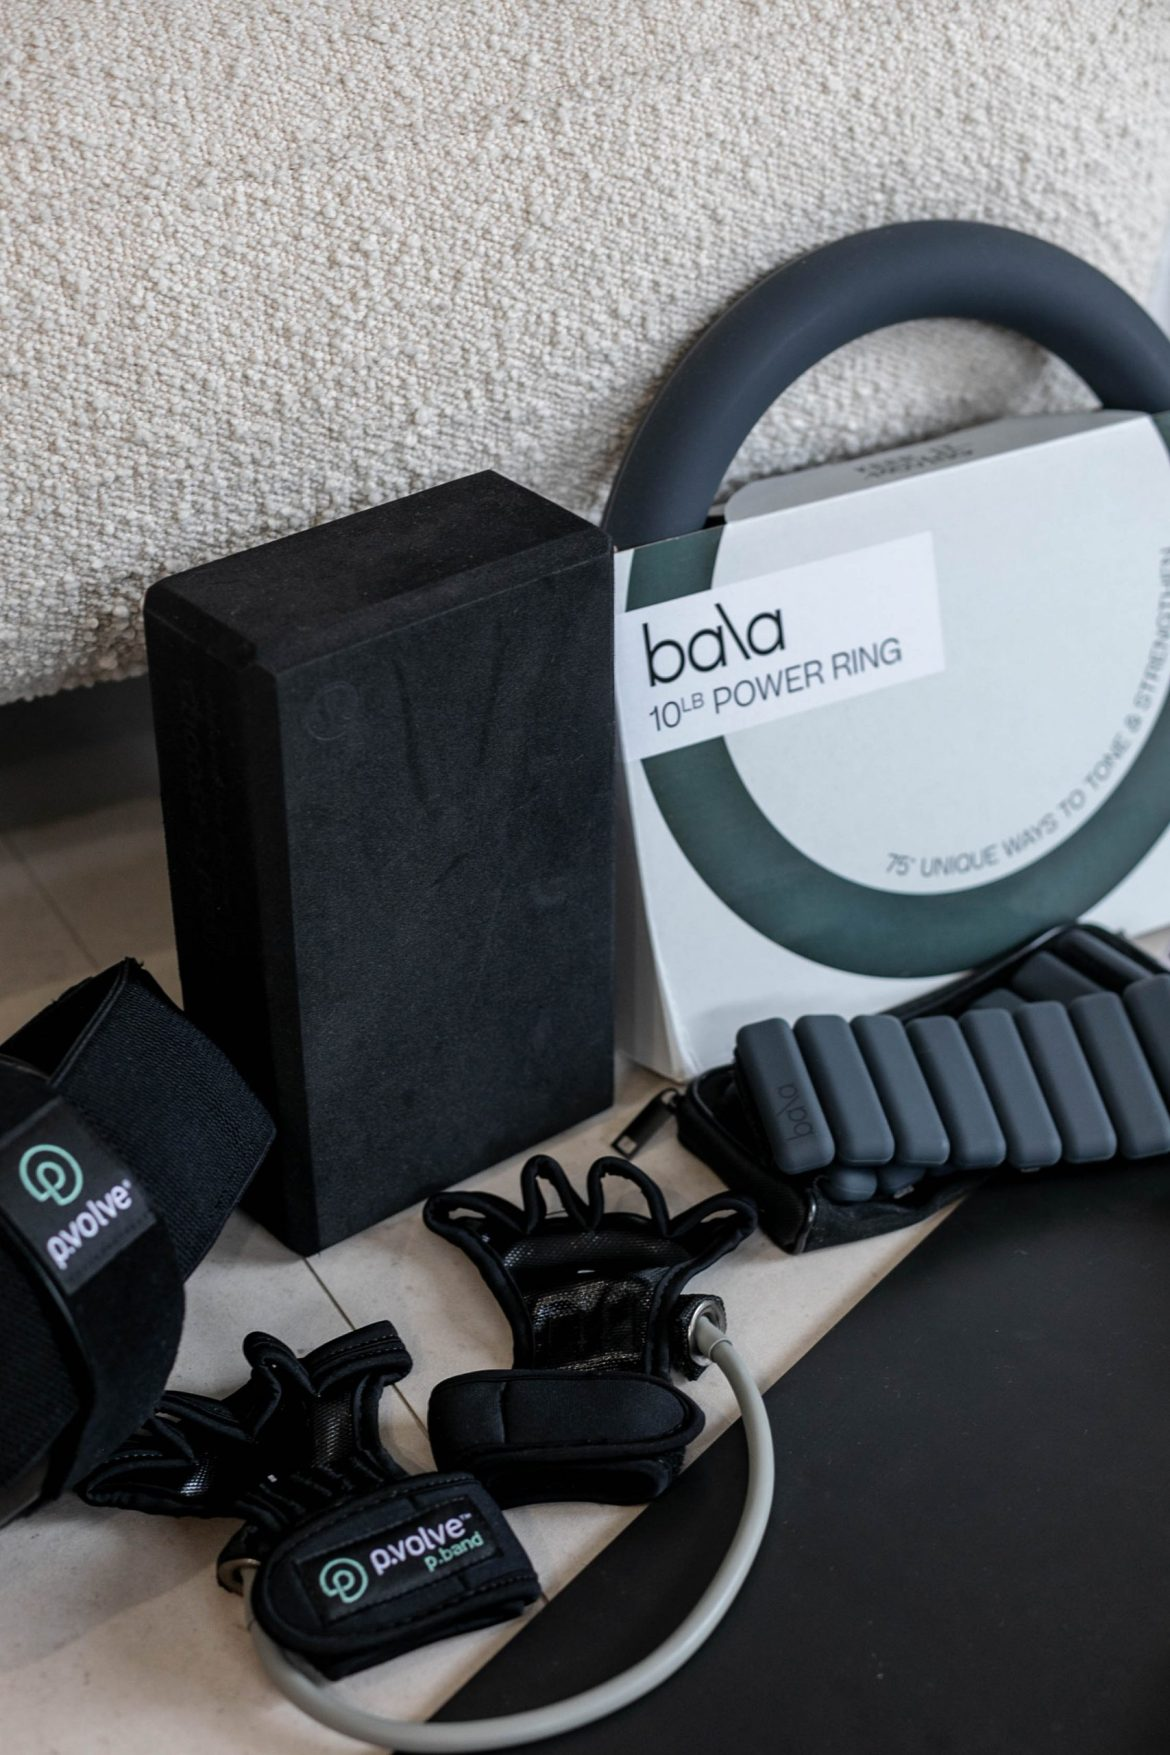 My at home gym equipment in charcoal black